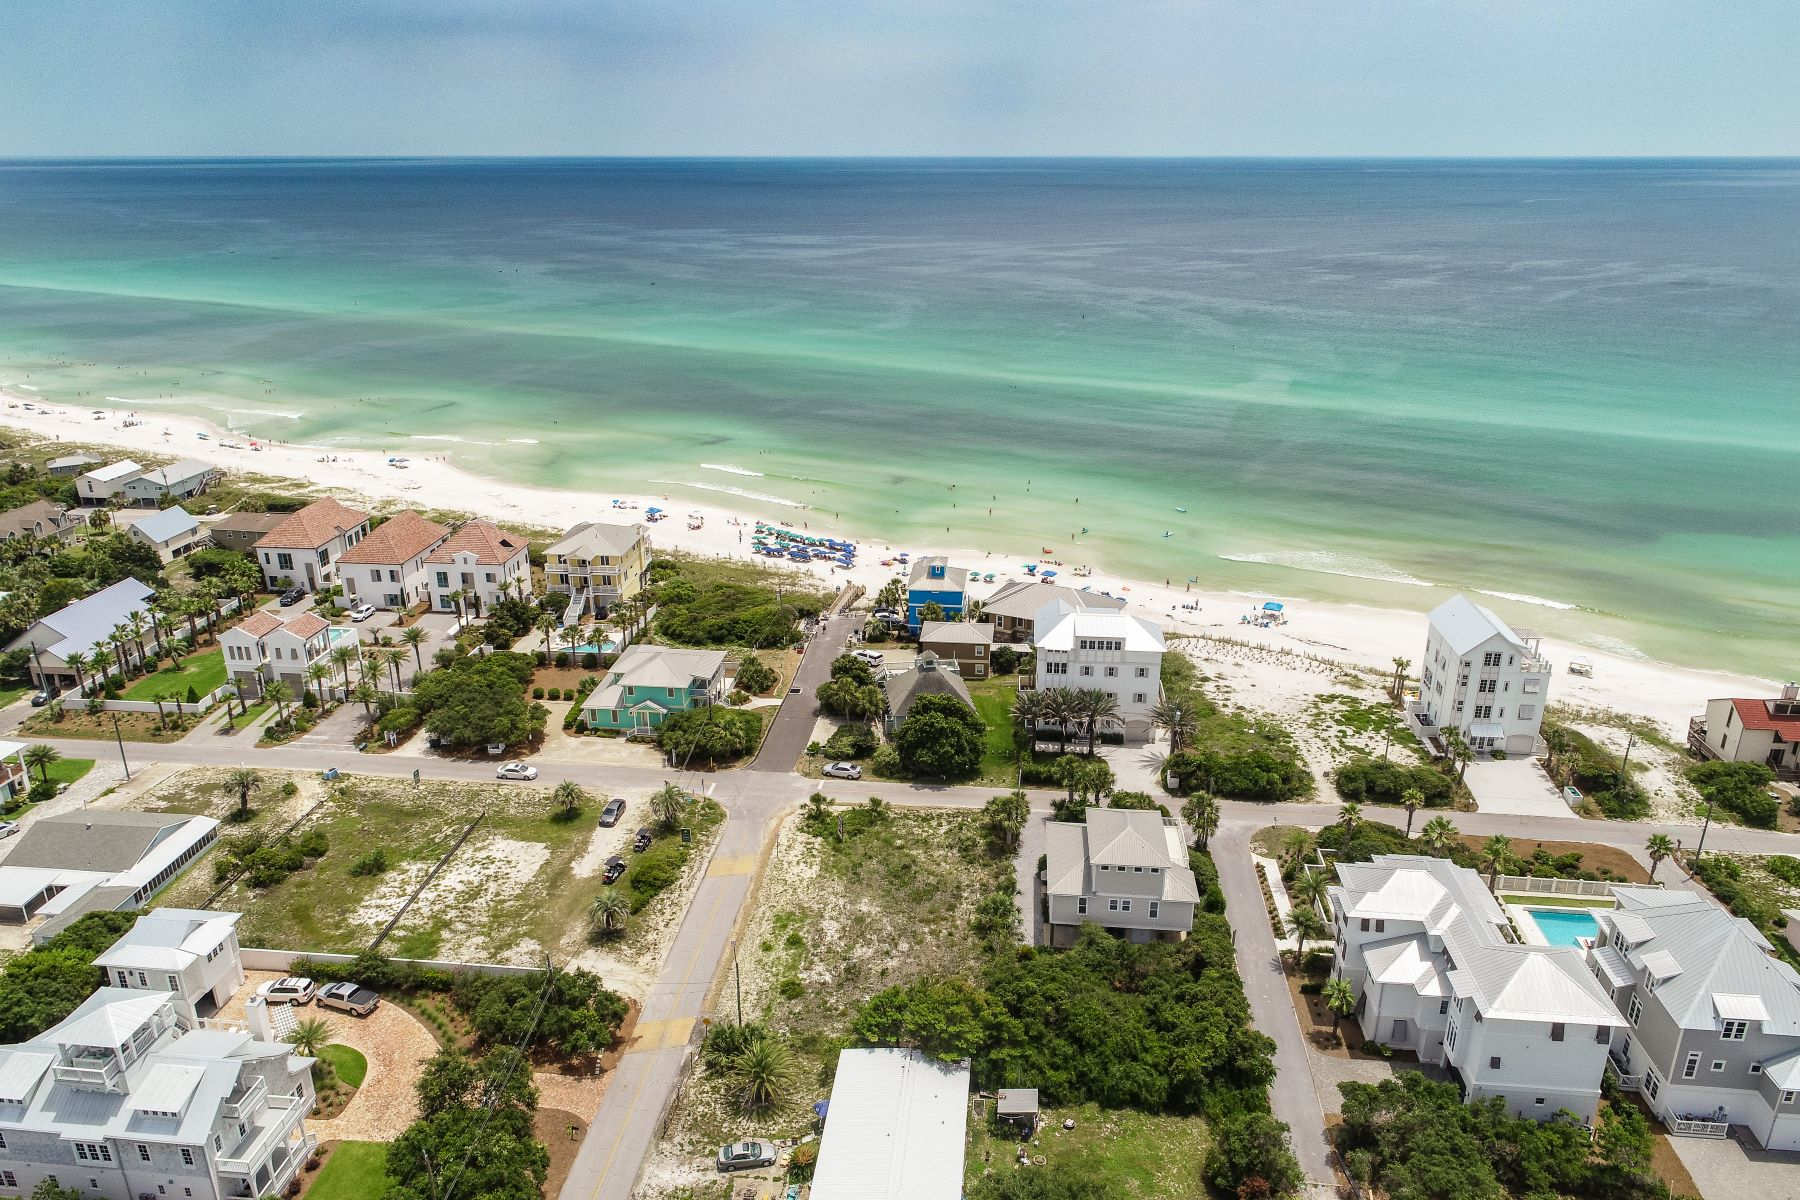 Terreno por un Venta en Opportunity to Build One Tier Off the Gulf of Mexico 137 Pompano Street, Inlet Beach, Florida 32461 Estados Unidos